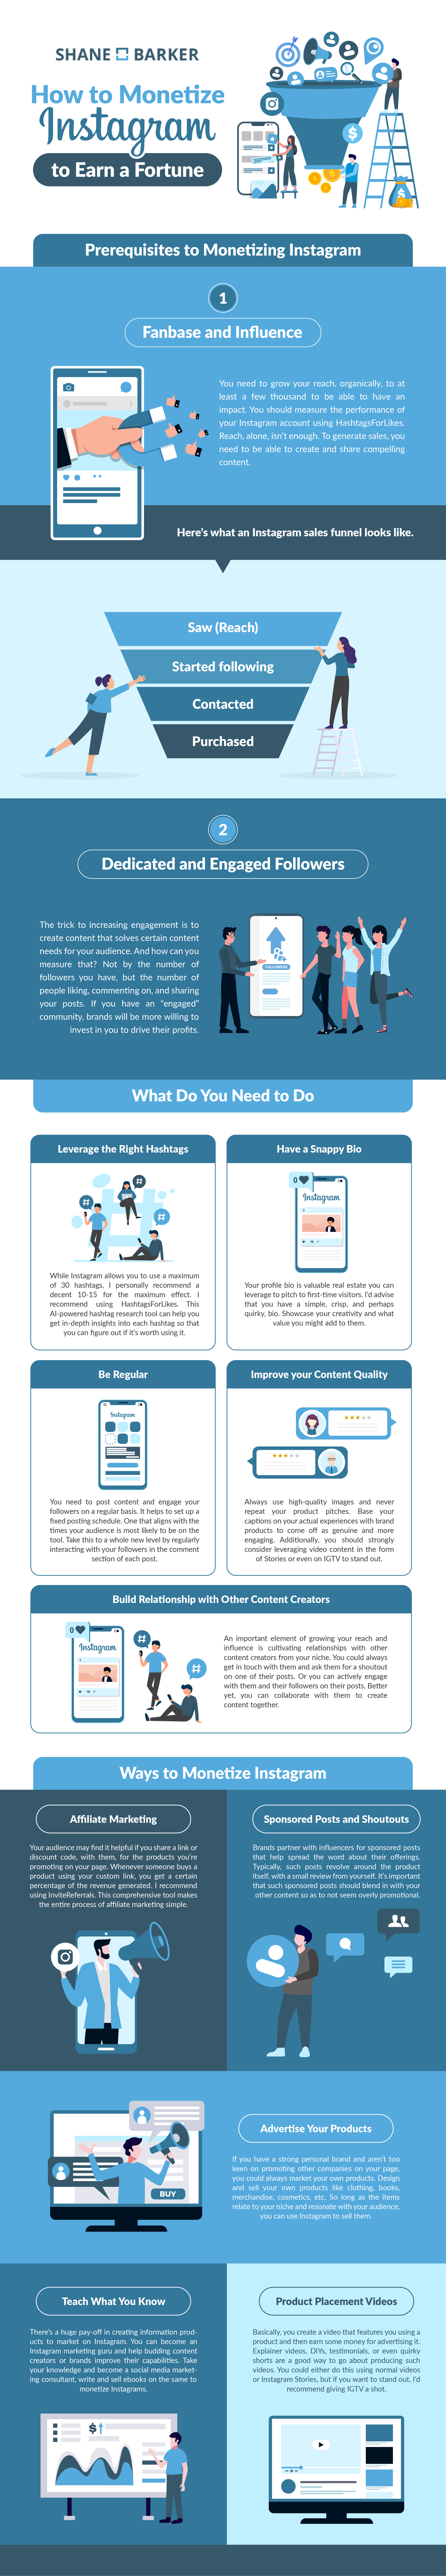 How to Monetize Instagram to Earn a Fortune infographic